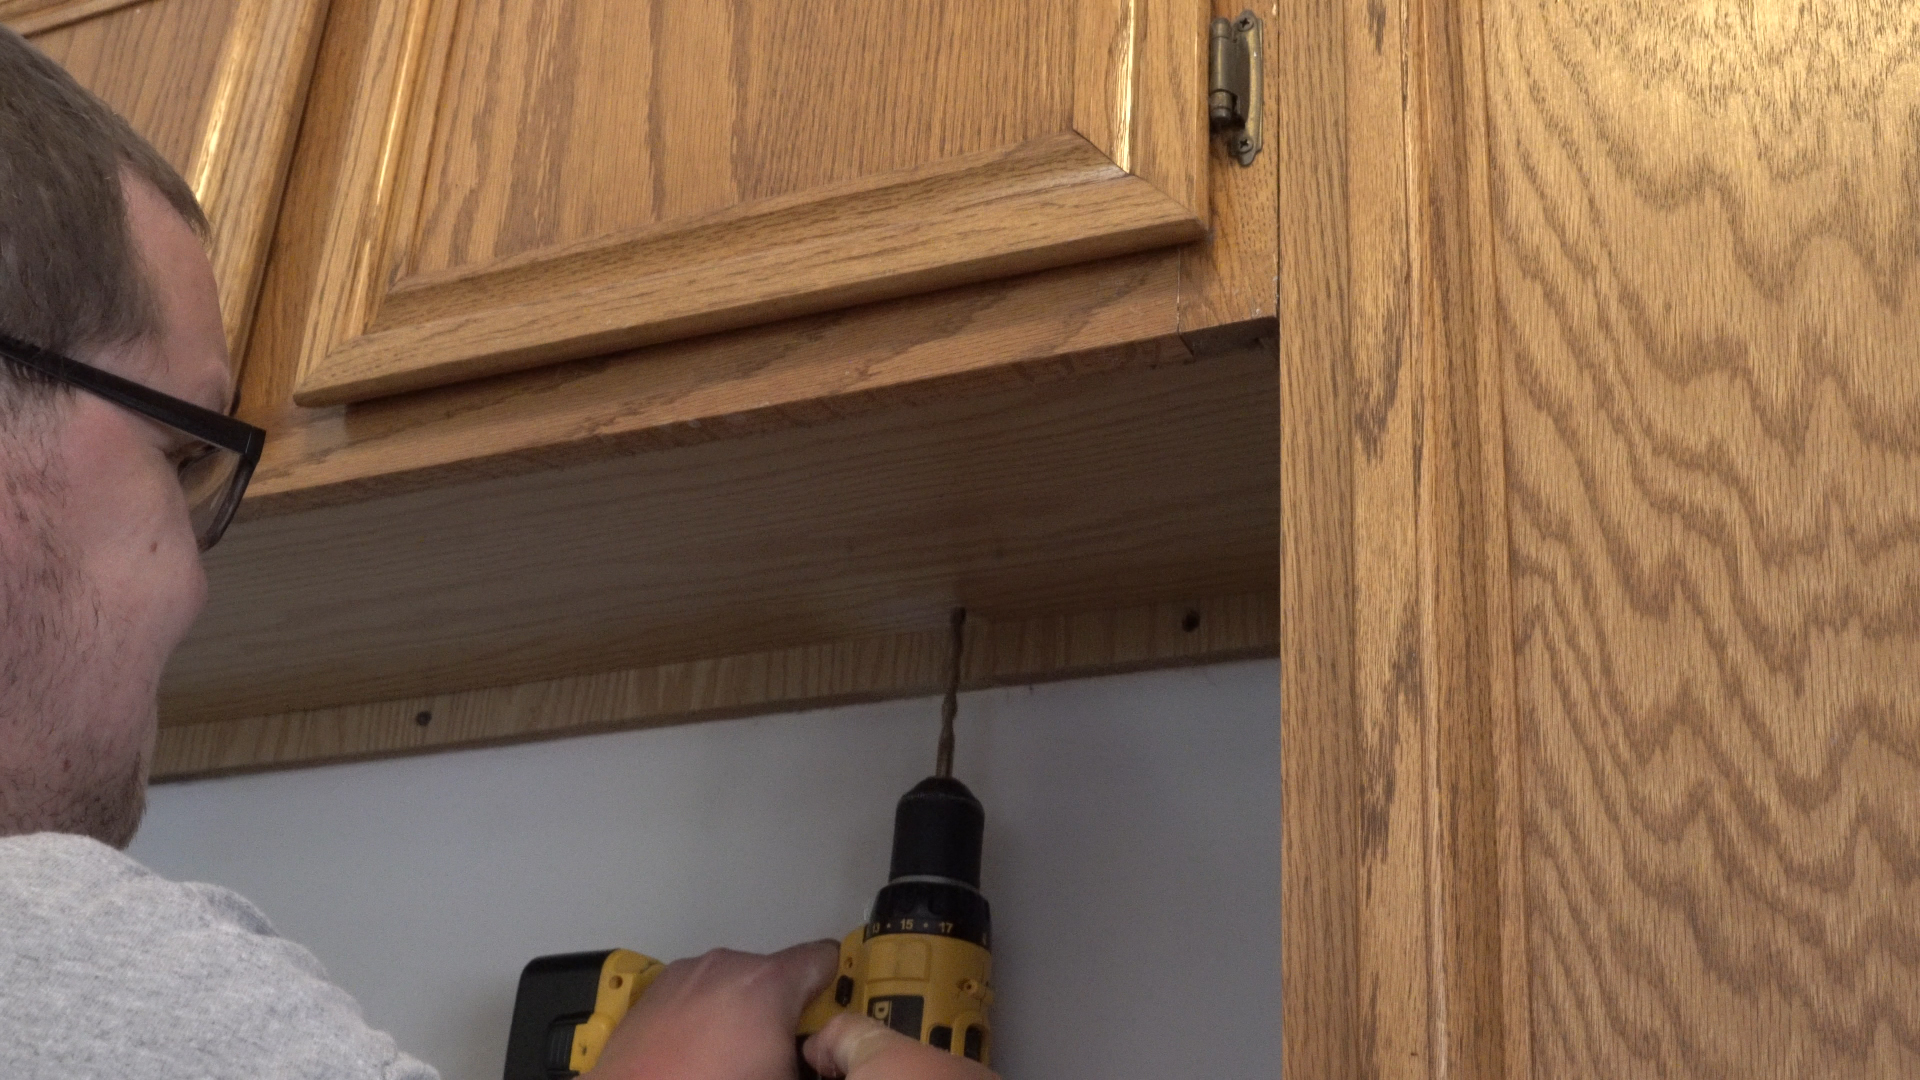 Above-Cabinet and Under-Cabinet LED Lighting: How to Install LED Strip Lights - step 2